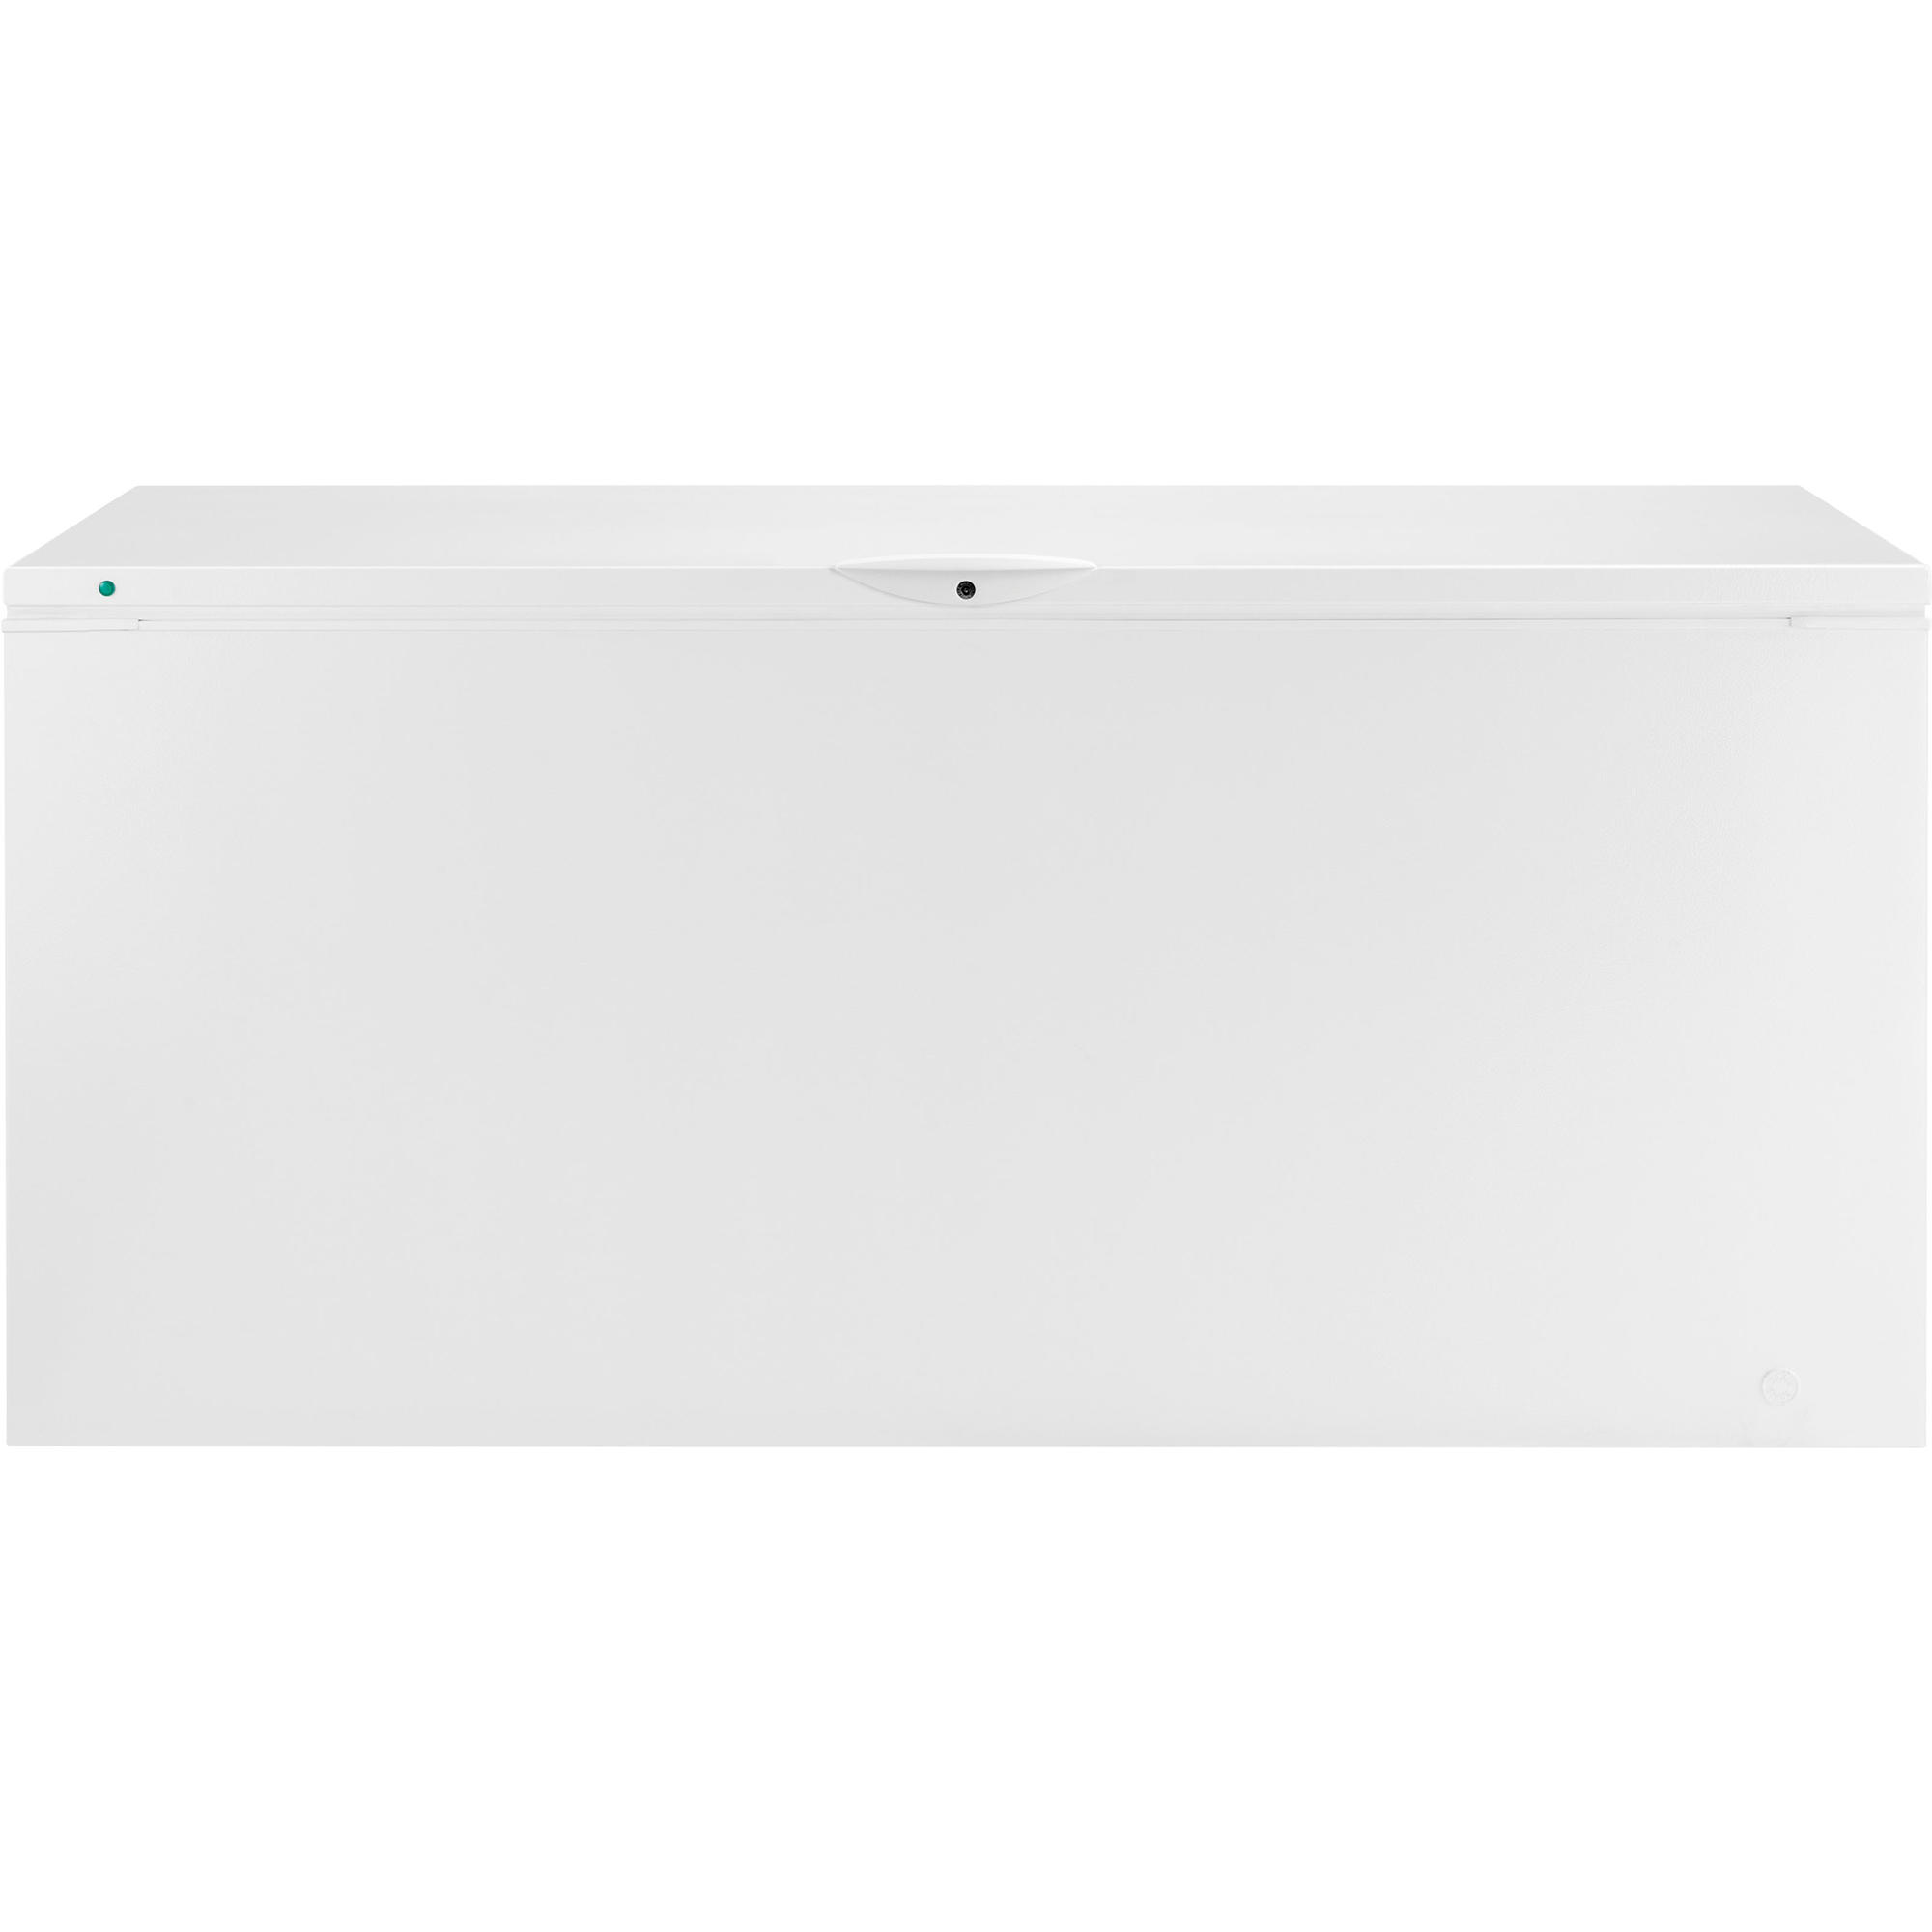 12822-22-cu-ft-Chest-Freezer-White